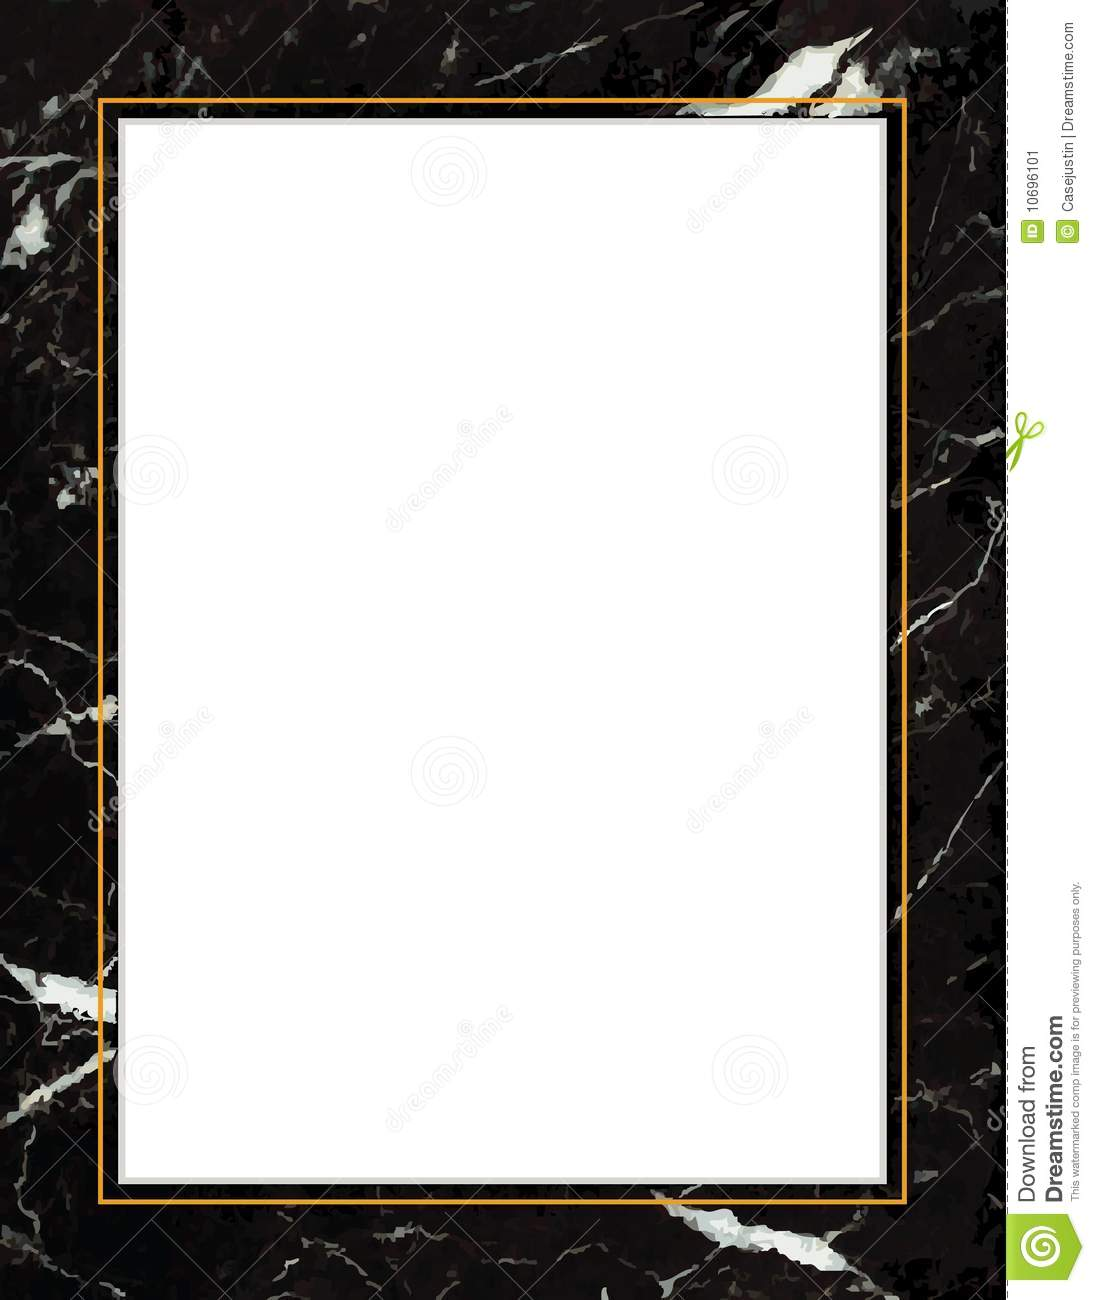 Black marble frame with white streaks and swirls gold trim add your own text for posters fliers announcements scrapbooks albums and letterheads